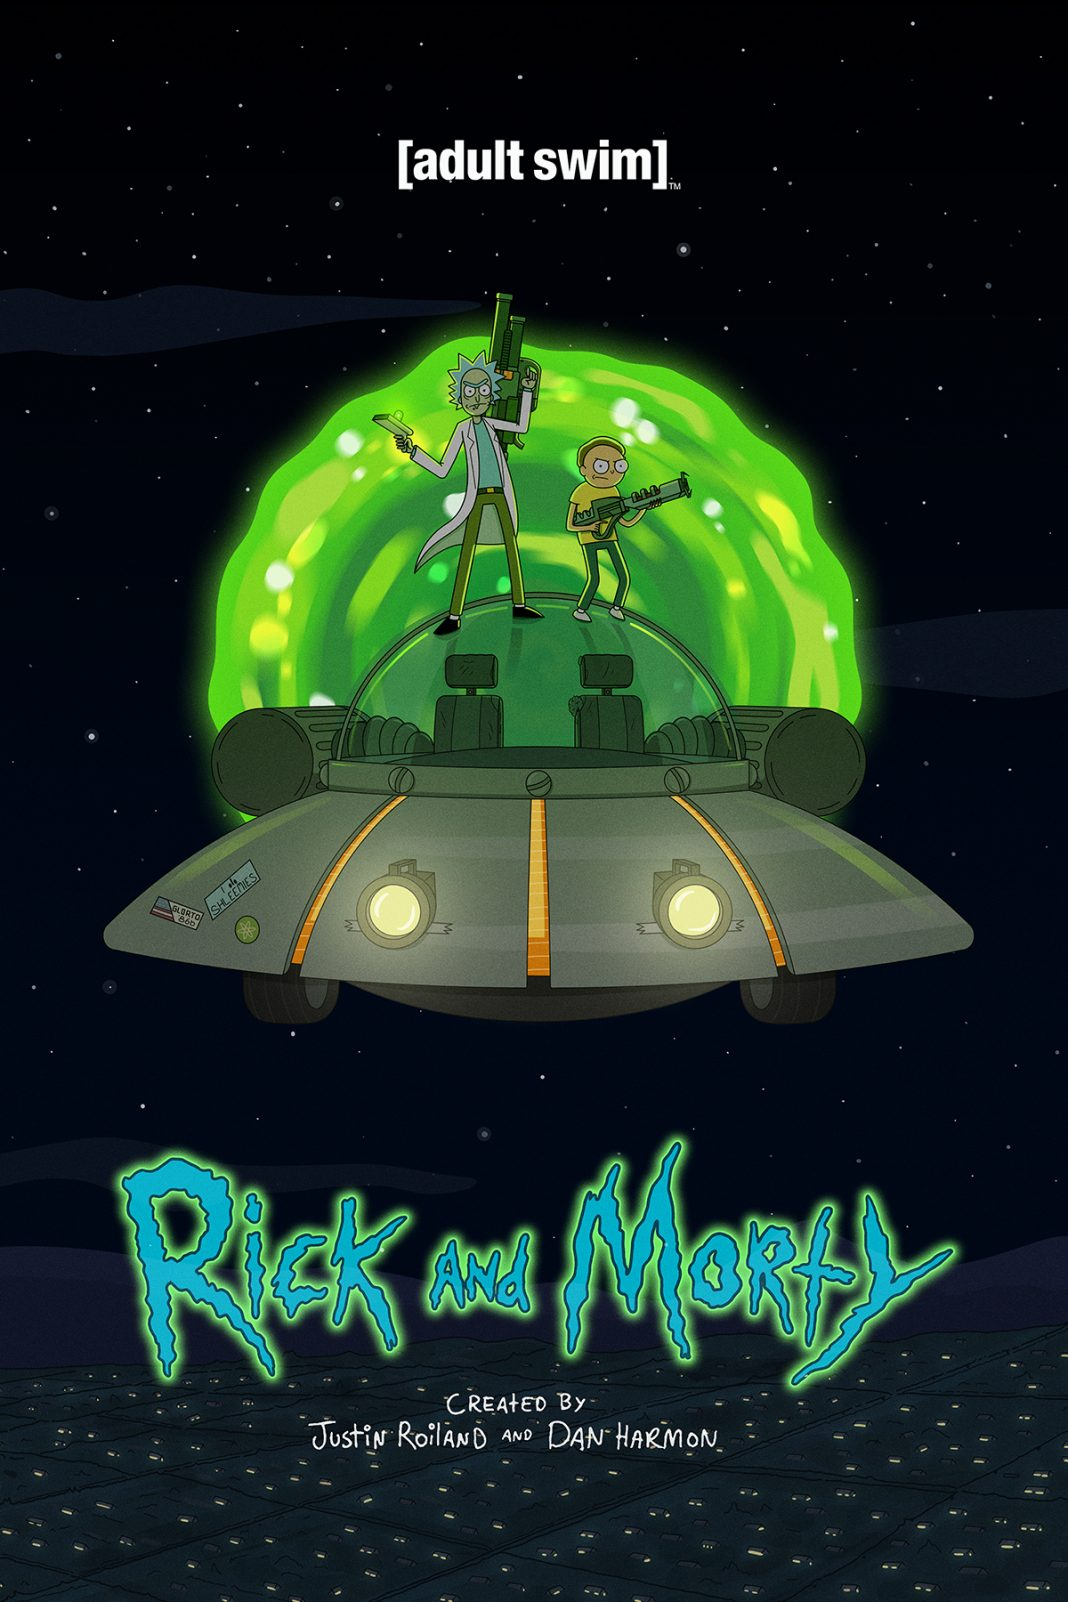 Rick & Morty Season 5